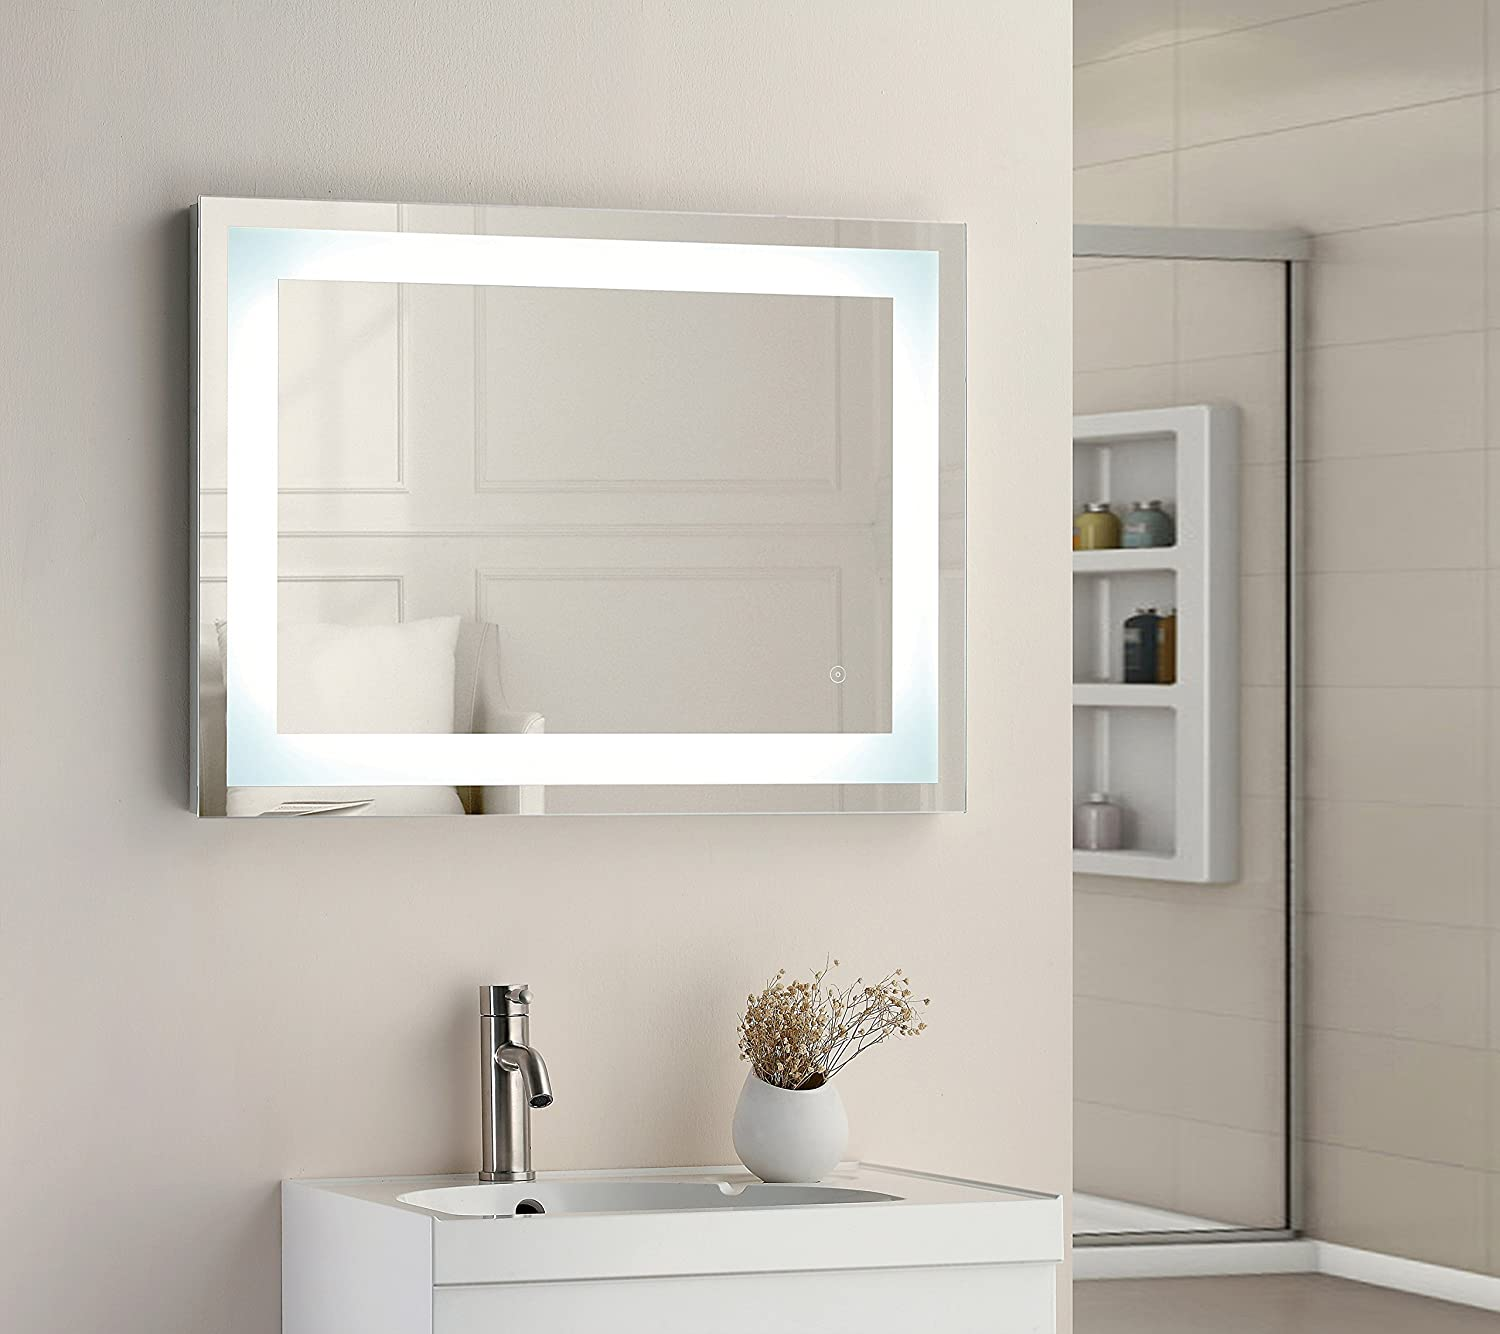 800 x 600mm Square LED Illuminated Touch Bathroom Mirror Demister IP44 Tailored Plumb